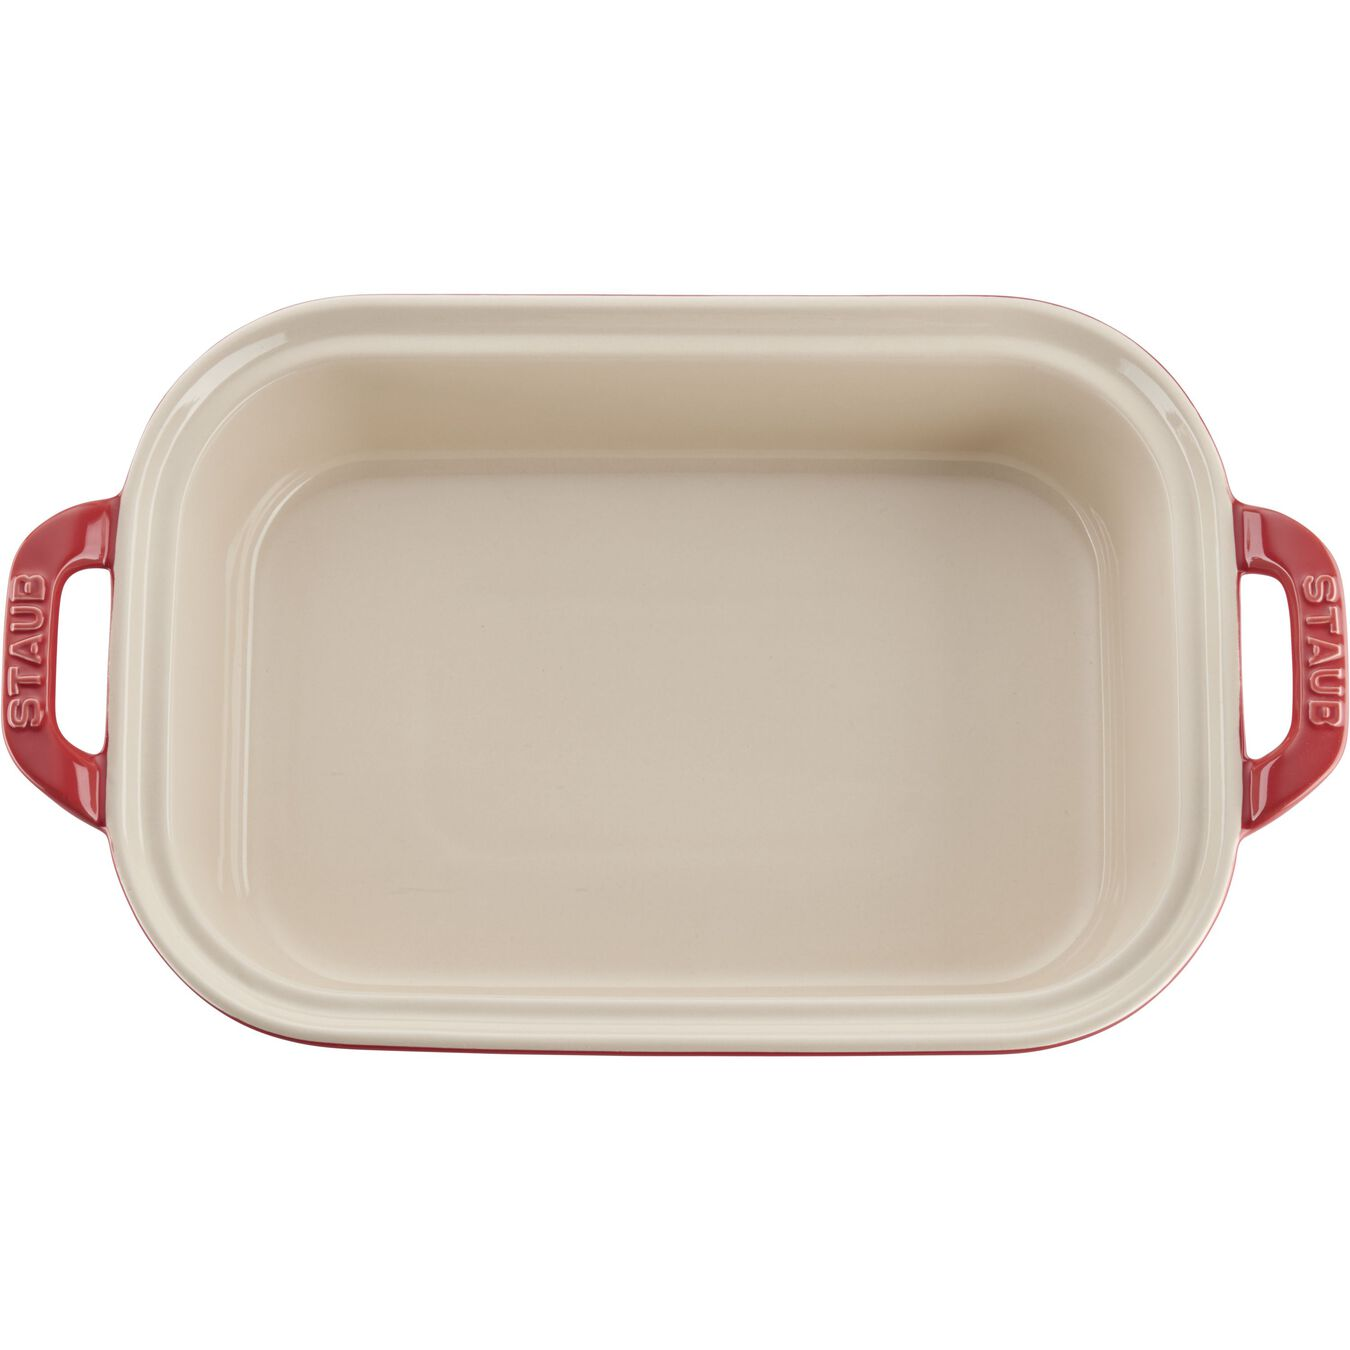 1-inch, rectangular, Special shape bakeware, cherry,,large 5